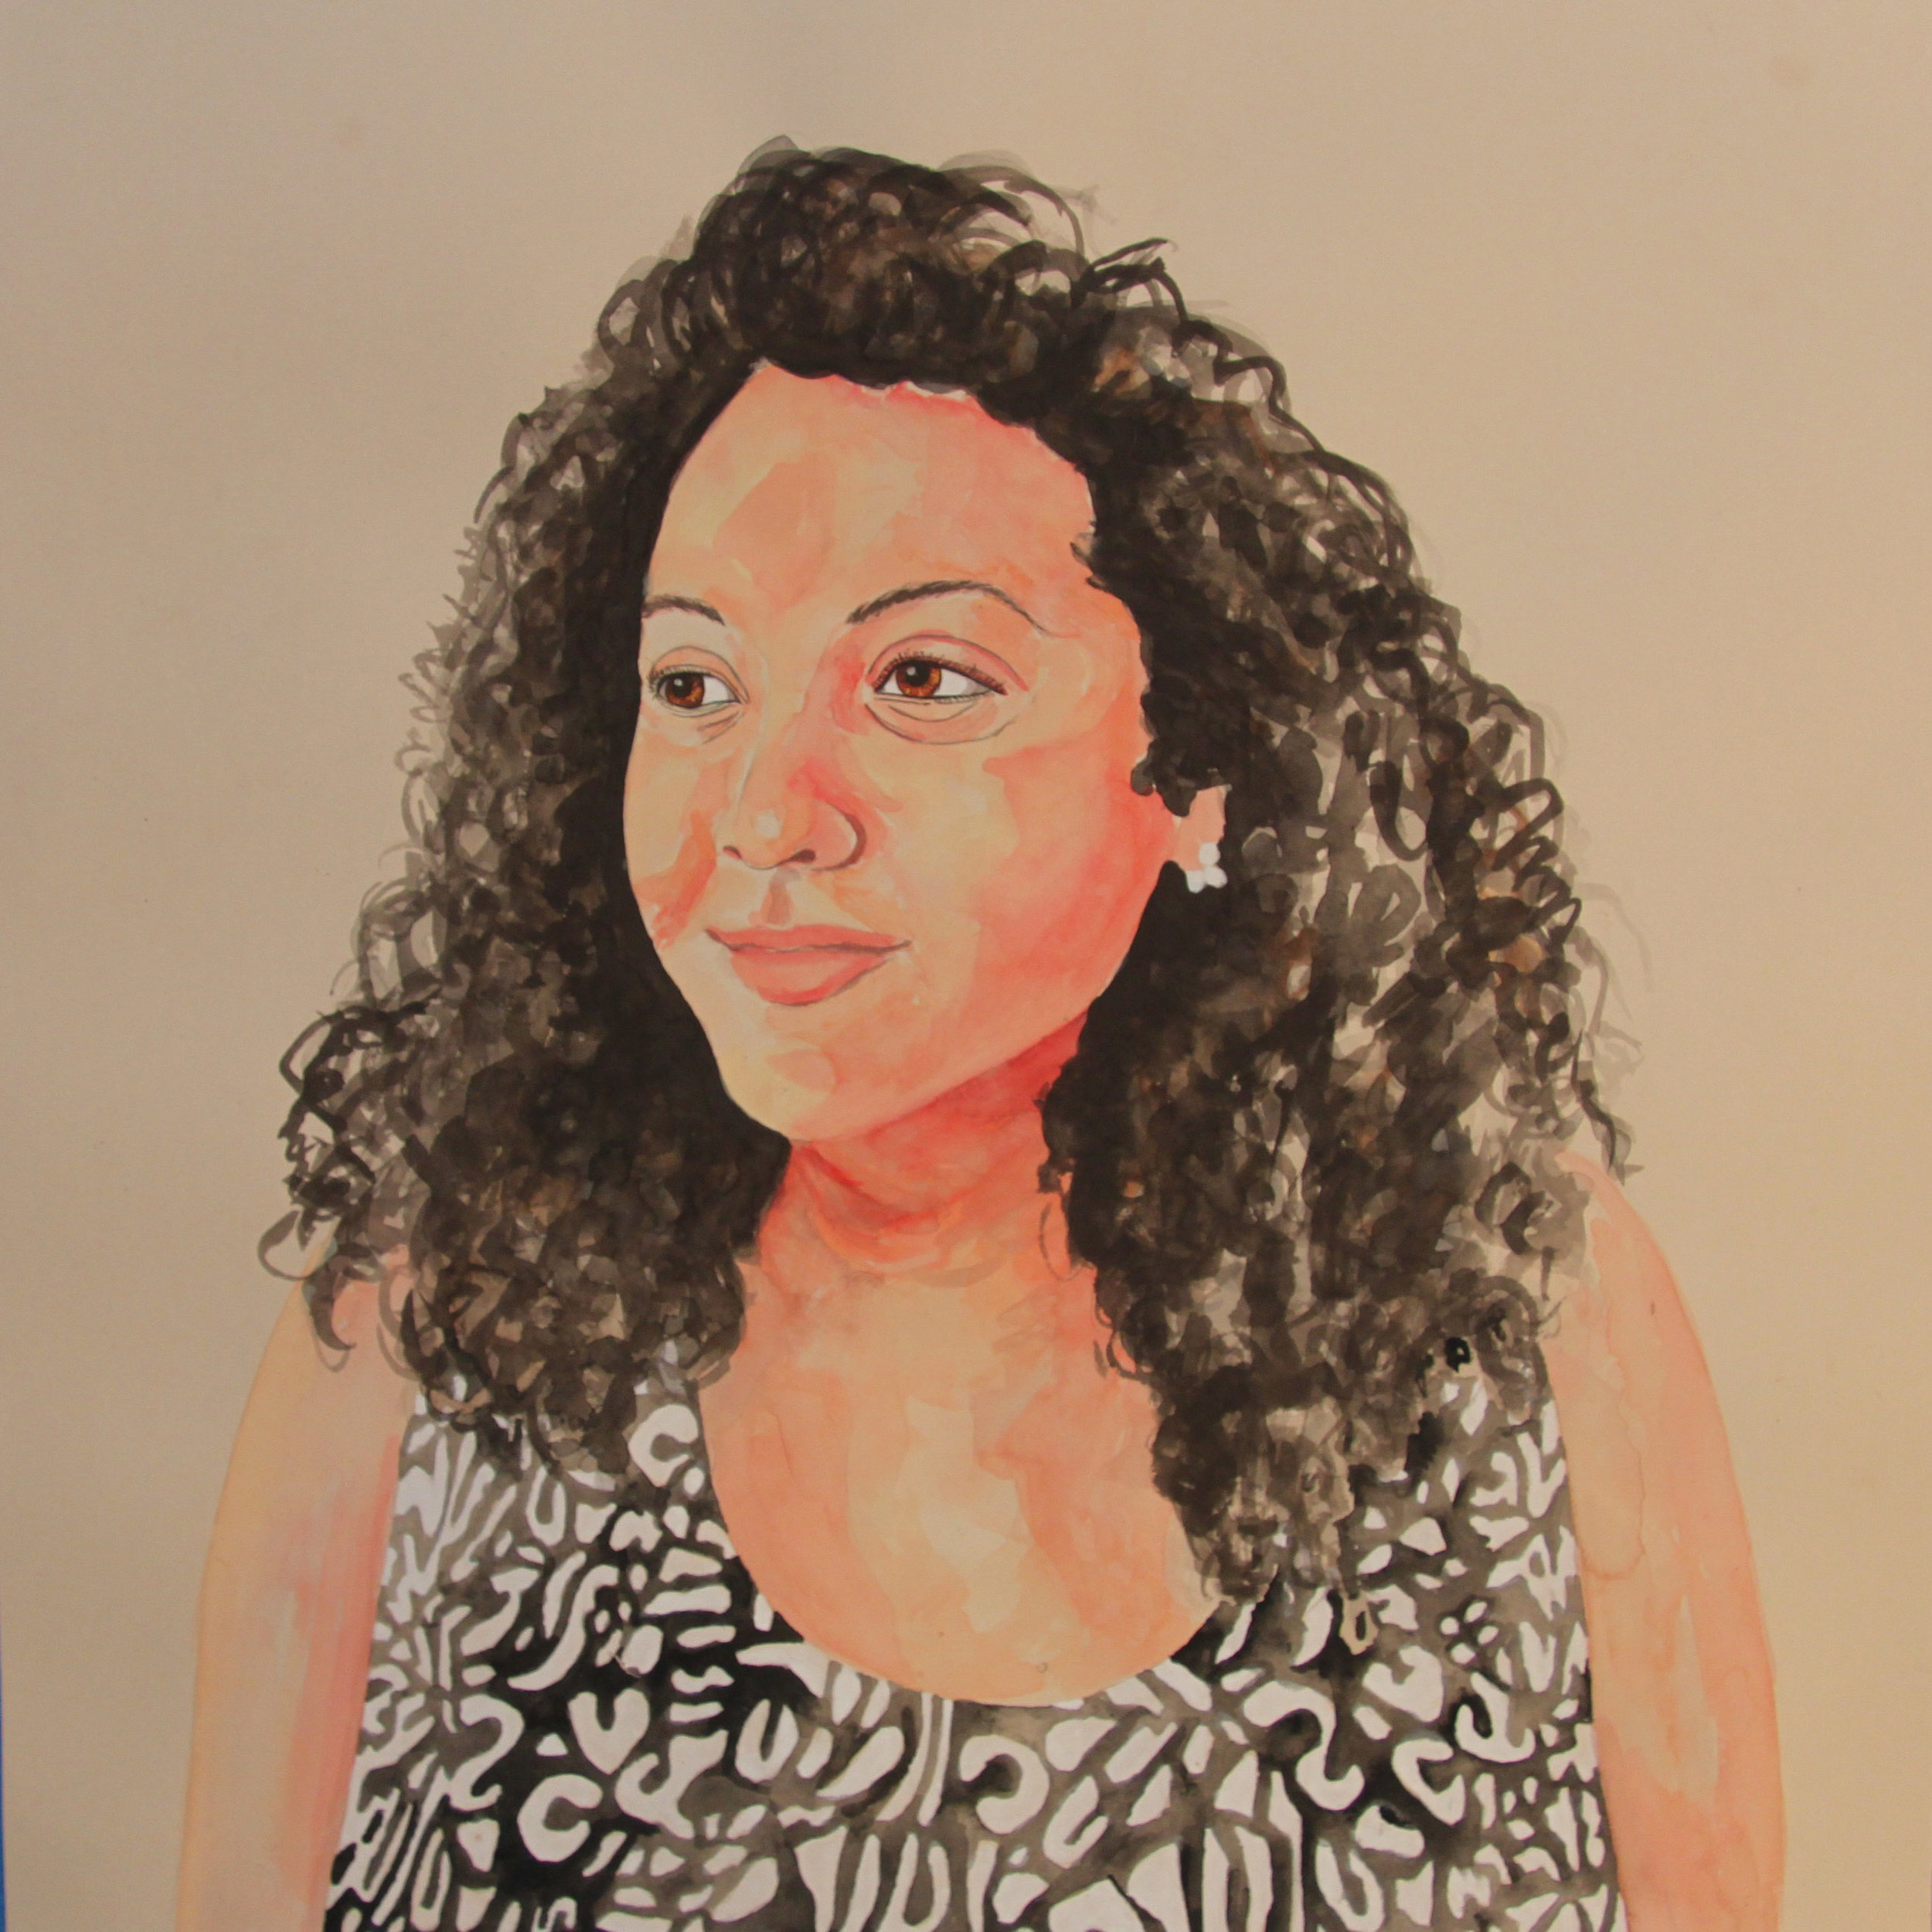 Dunn_MarissaGodshaulk_watercolor.jpg